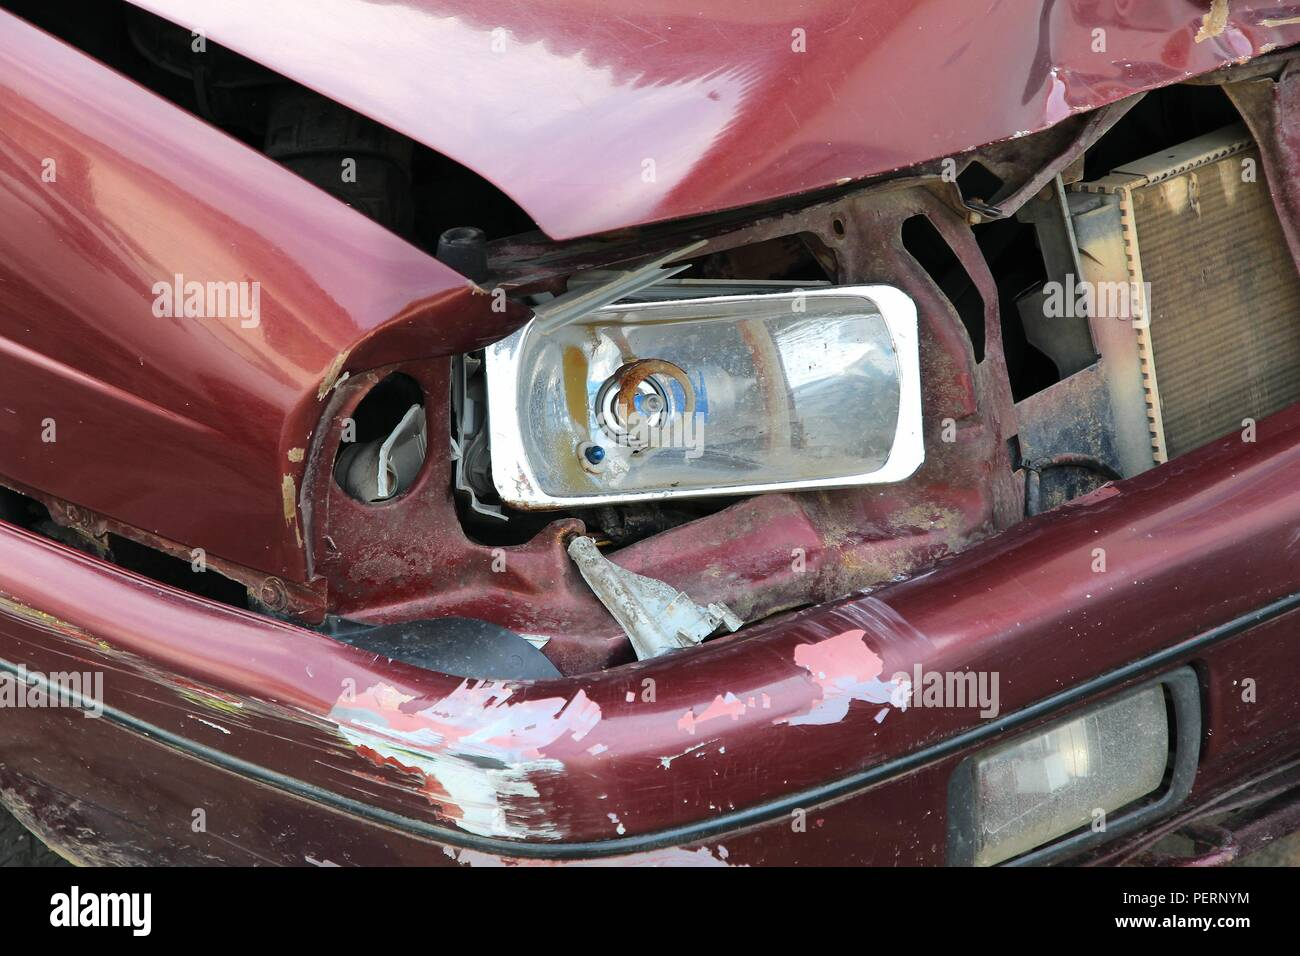 Small generic car with dented front wing. Vehicle accident result. - Stock Image